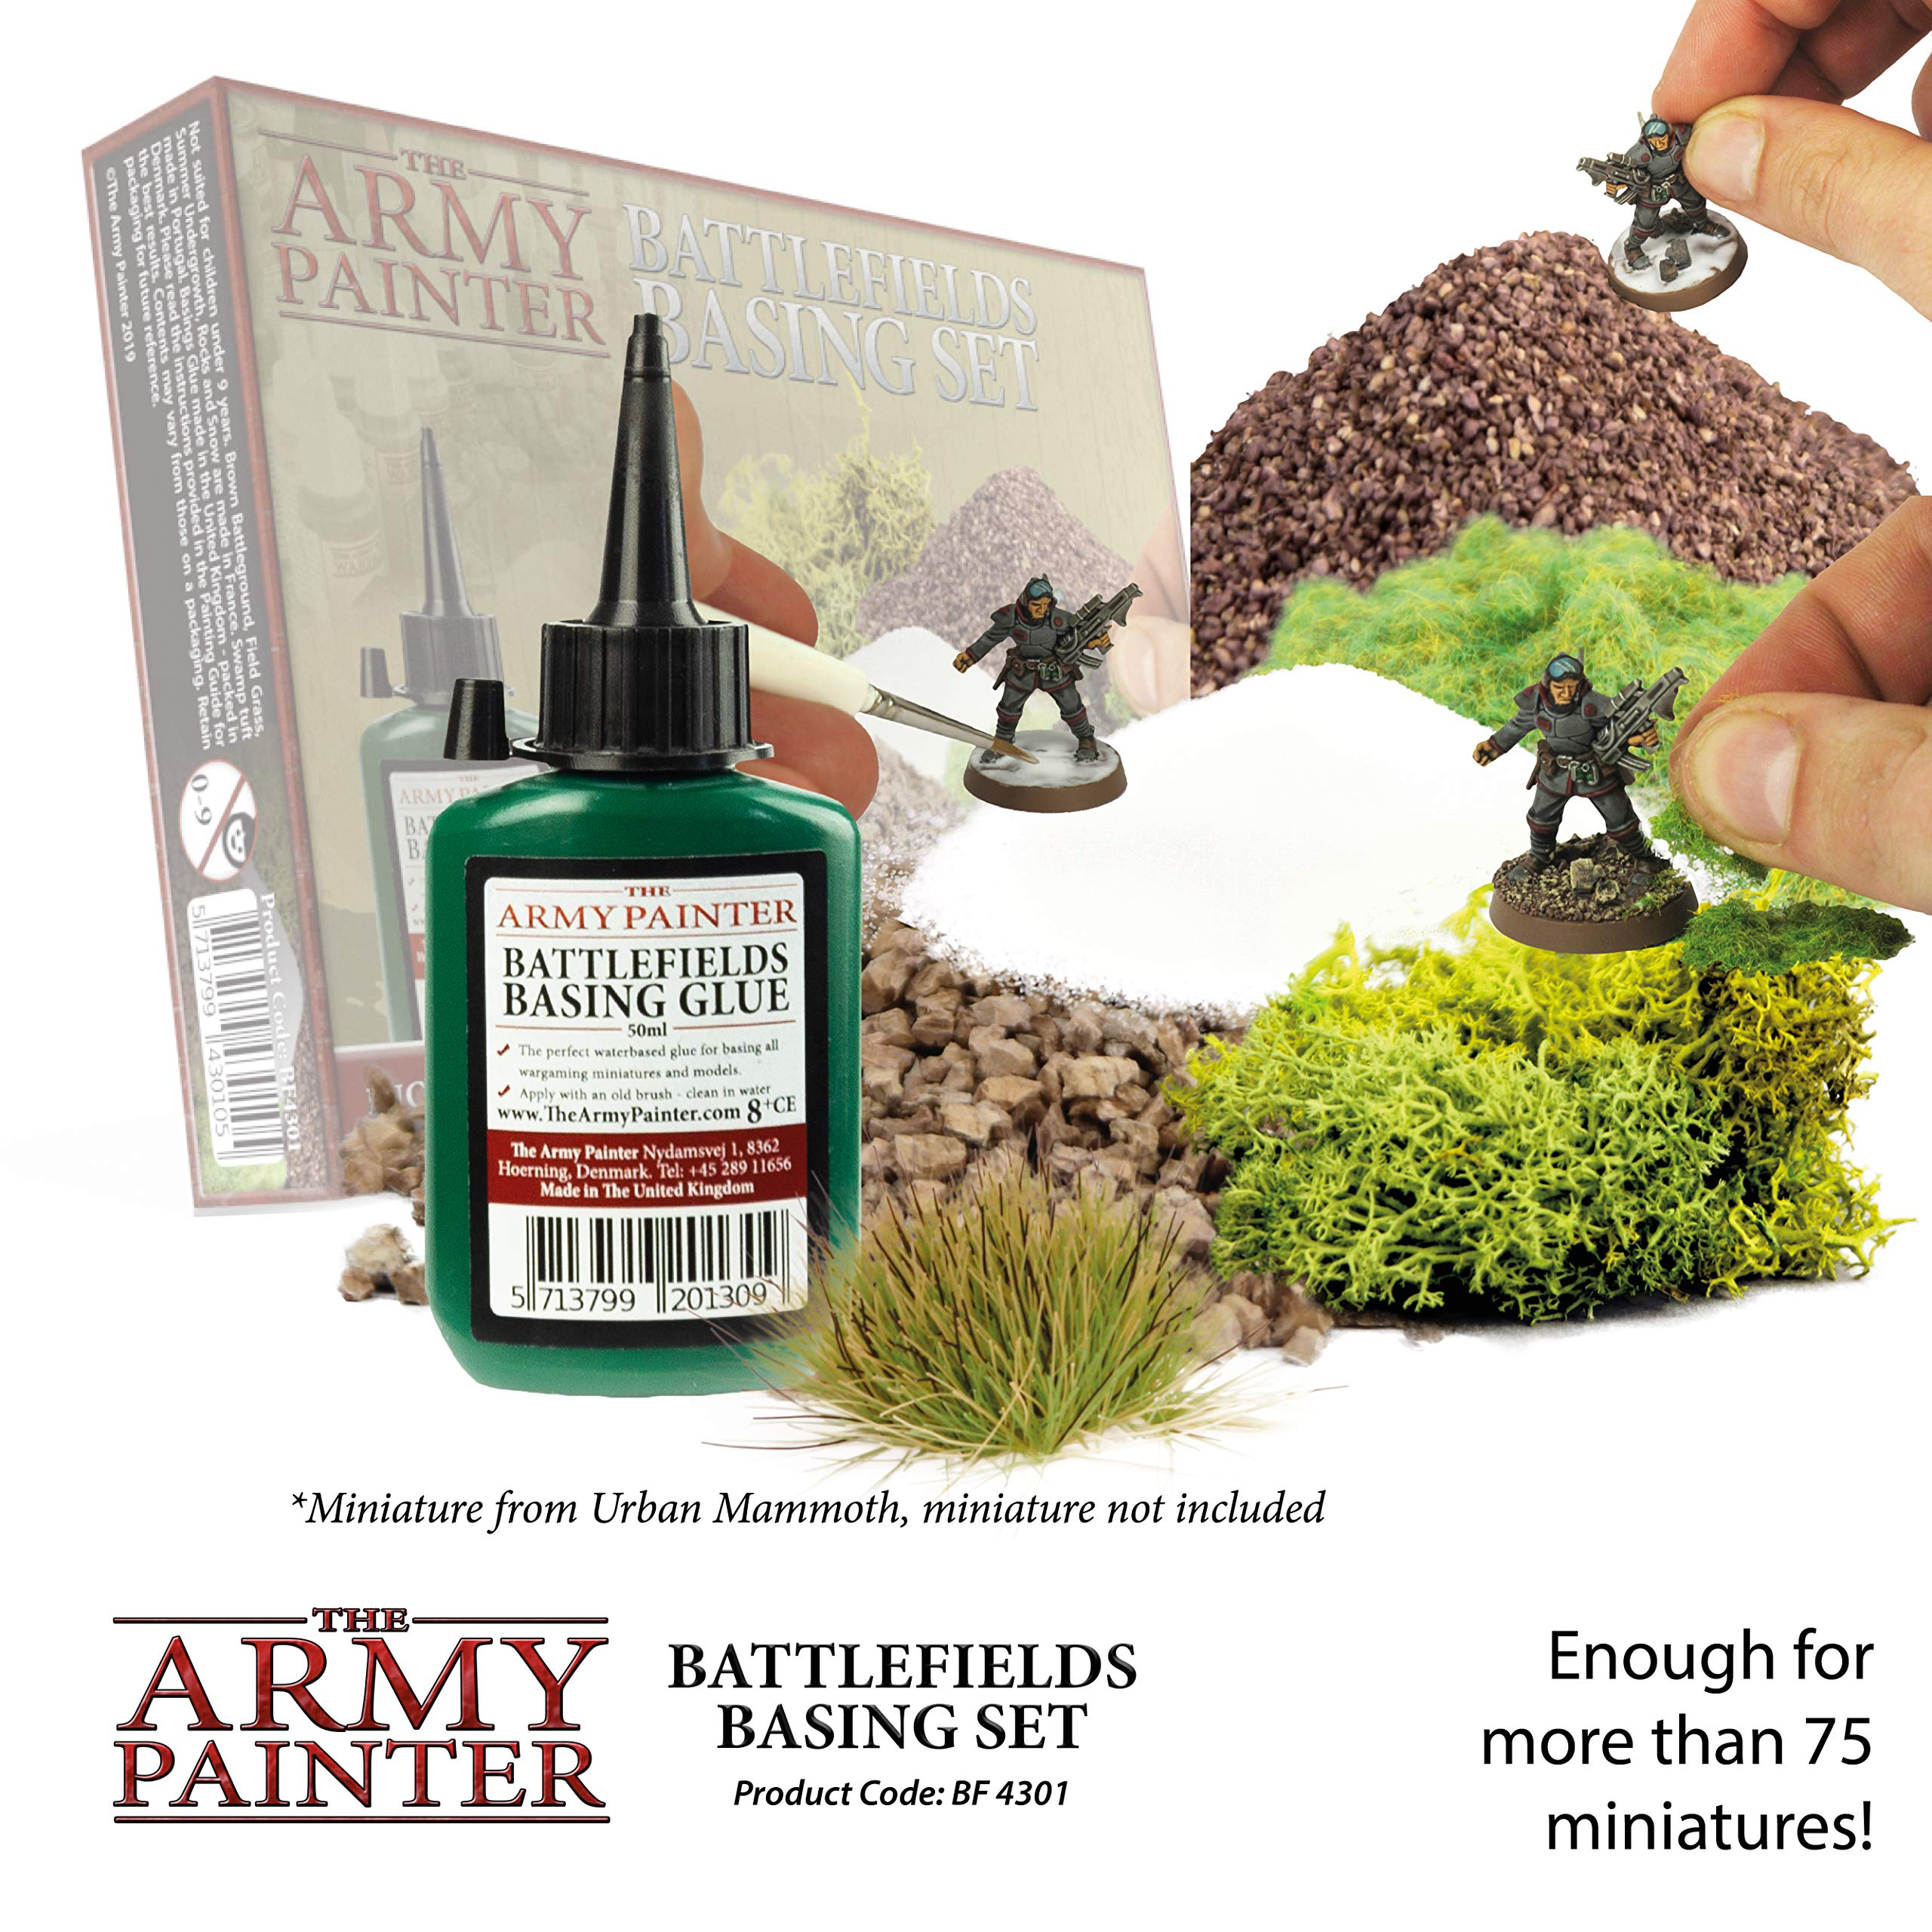 The Army Painter Battlefields Basing Set - Wargamers Terrain Model Kit for Miniature Bases and Dioramas with Landscape Rocks, Scenic Sand, Static Grass, Grass Tufts and Free Basing Glue by The Army Painter (Image #3)